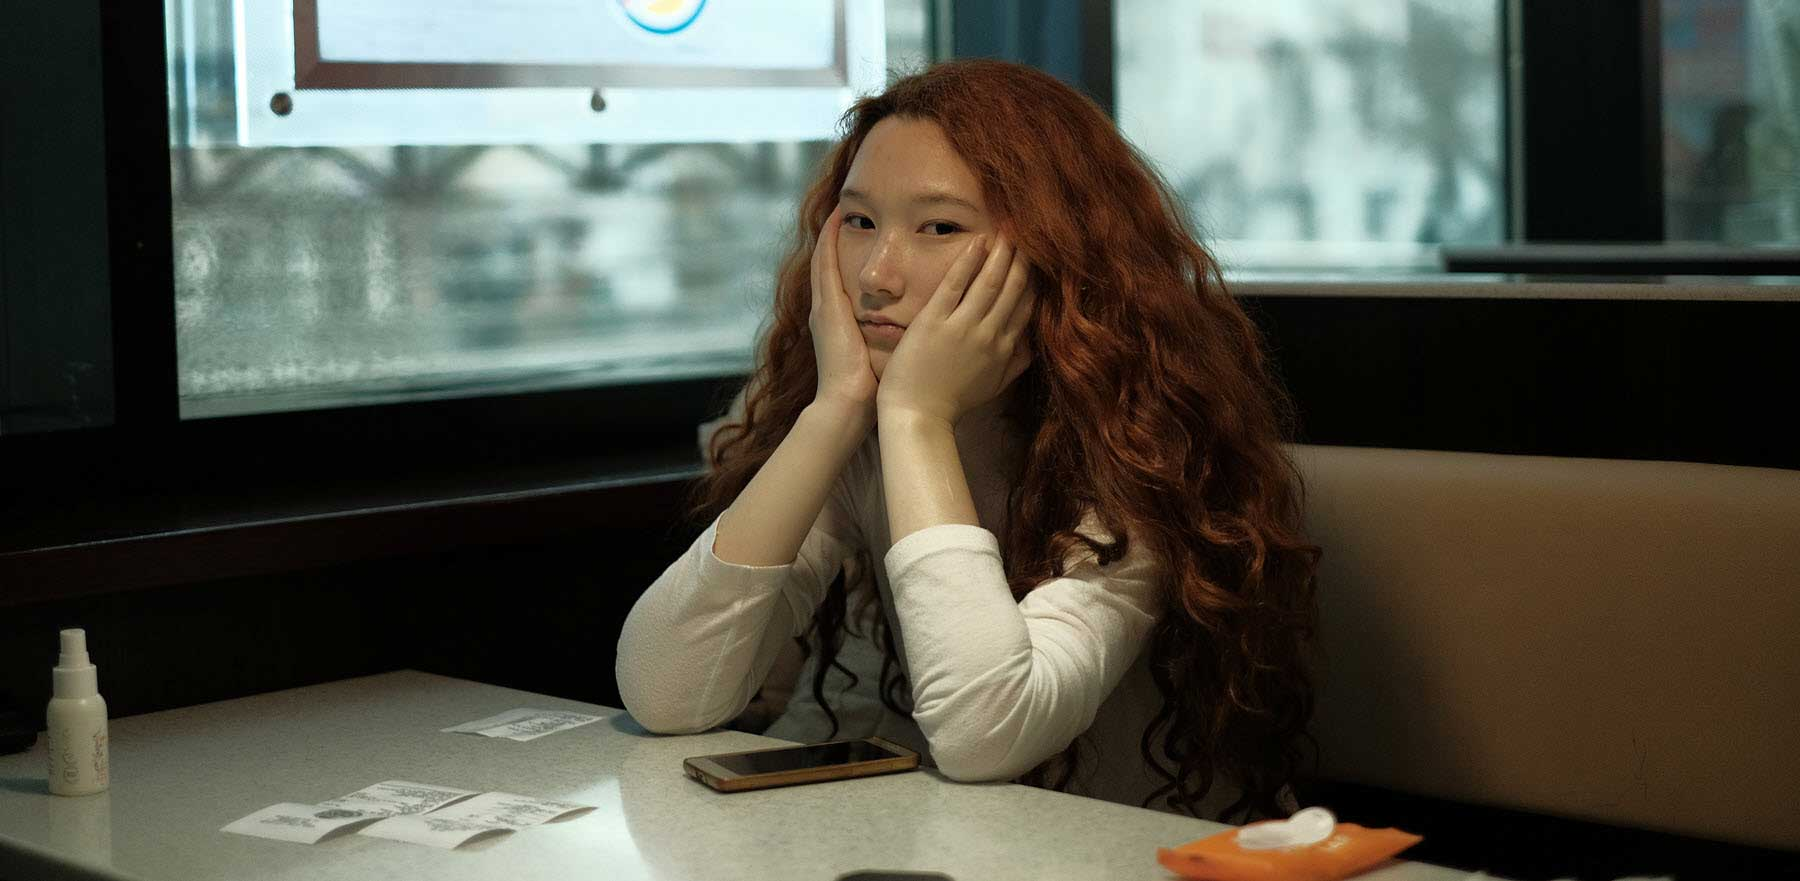 Girl-sitting-at-a-restaurant-struggling-with-forgiving-herself